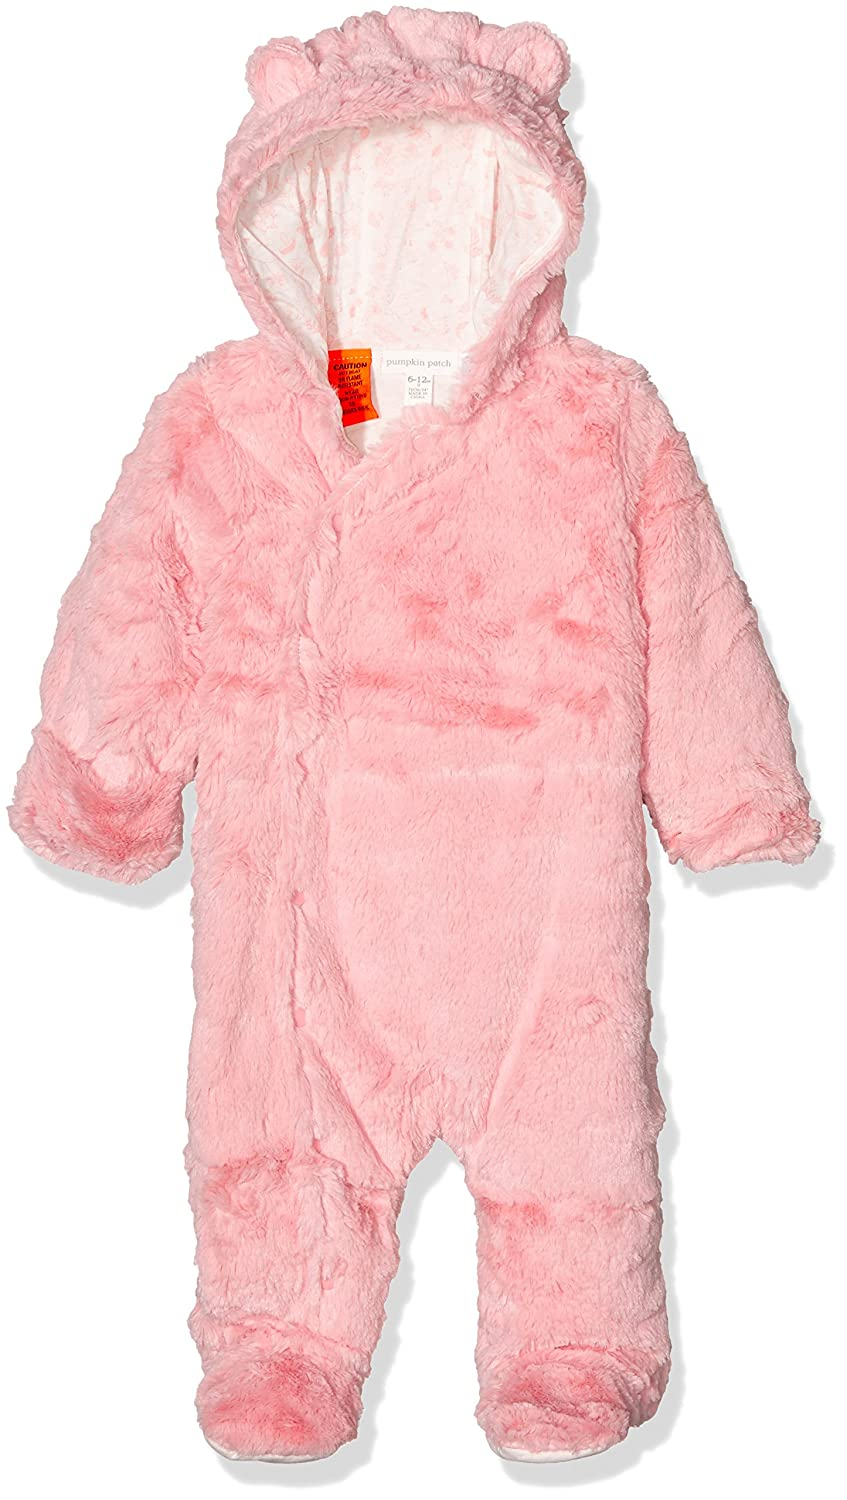 c131fa3bc453 Pumpkin Patch Baby 0-24m Girls Furry All-in-One Footies